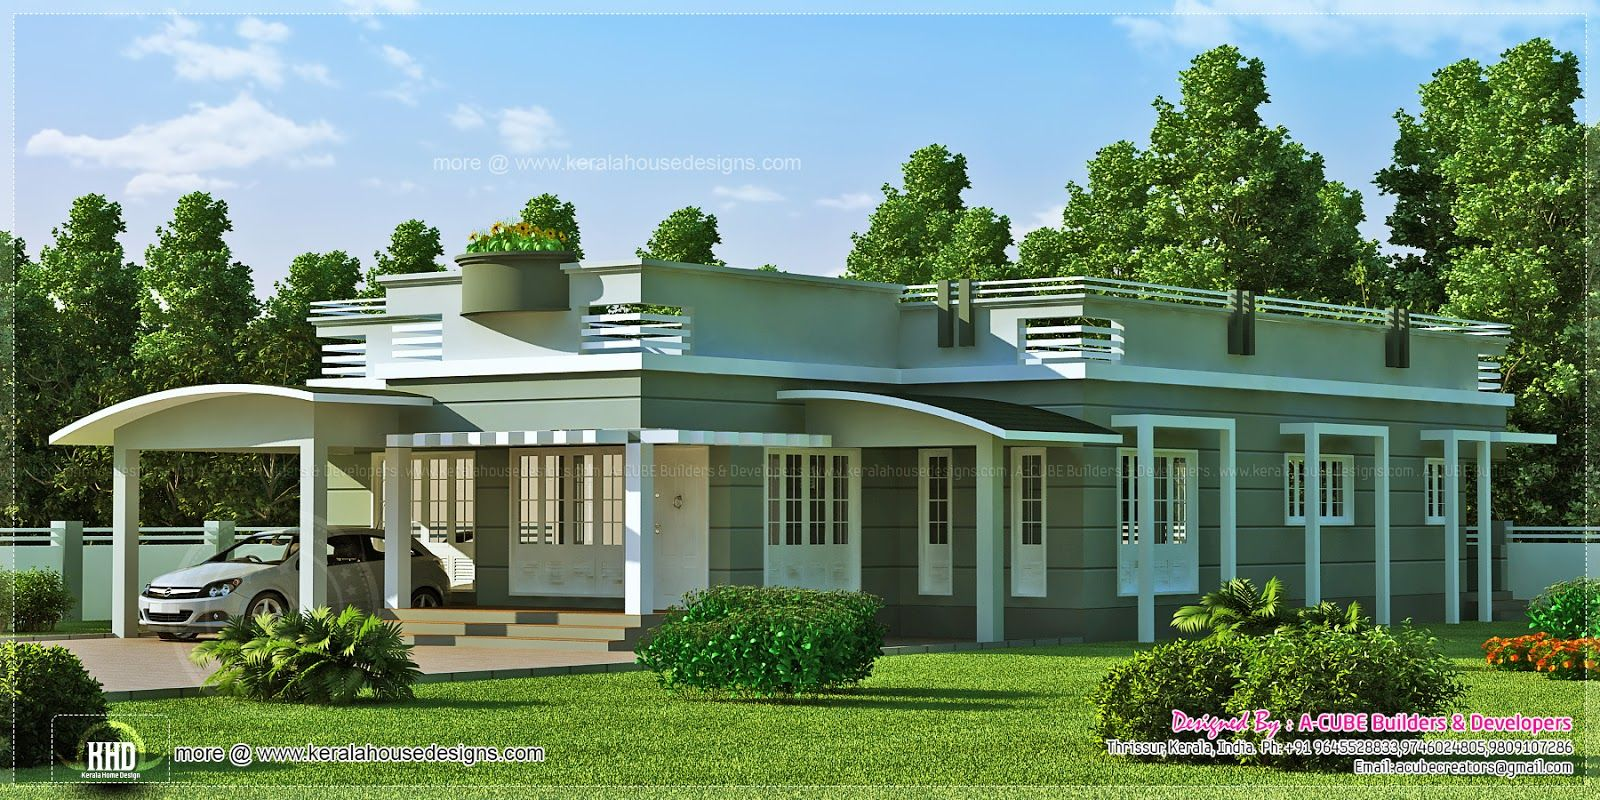 Single Story Home Designs One Story House Front View One Floor. Single Story Home Designs One Story House Front View One Floor